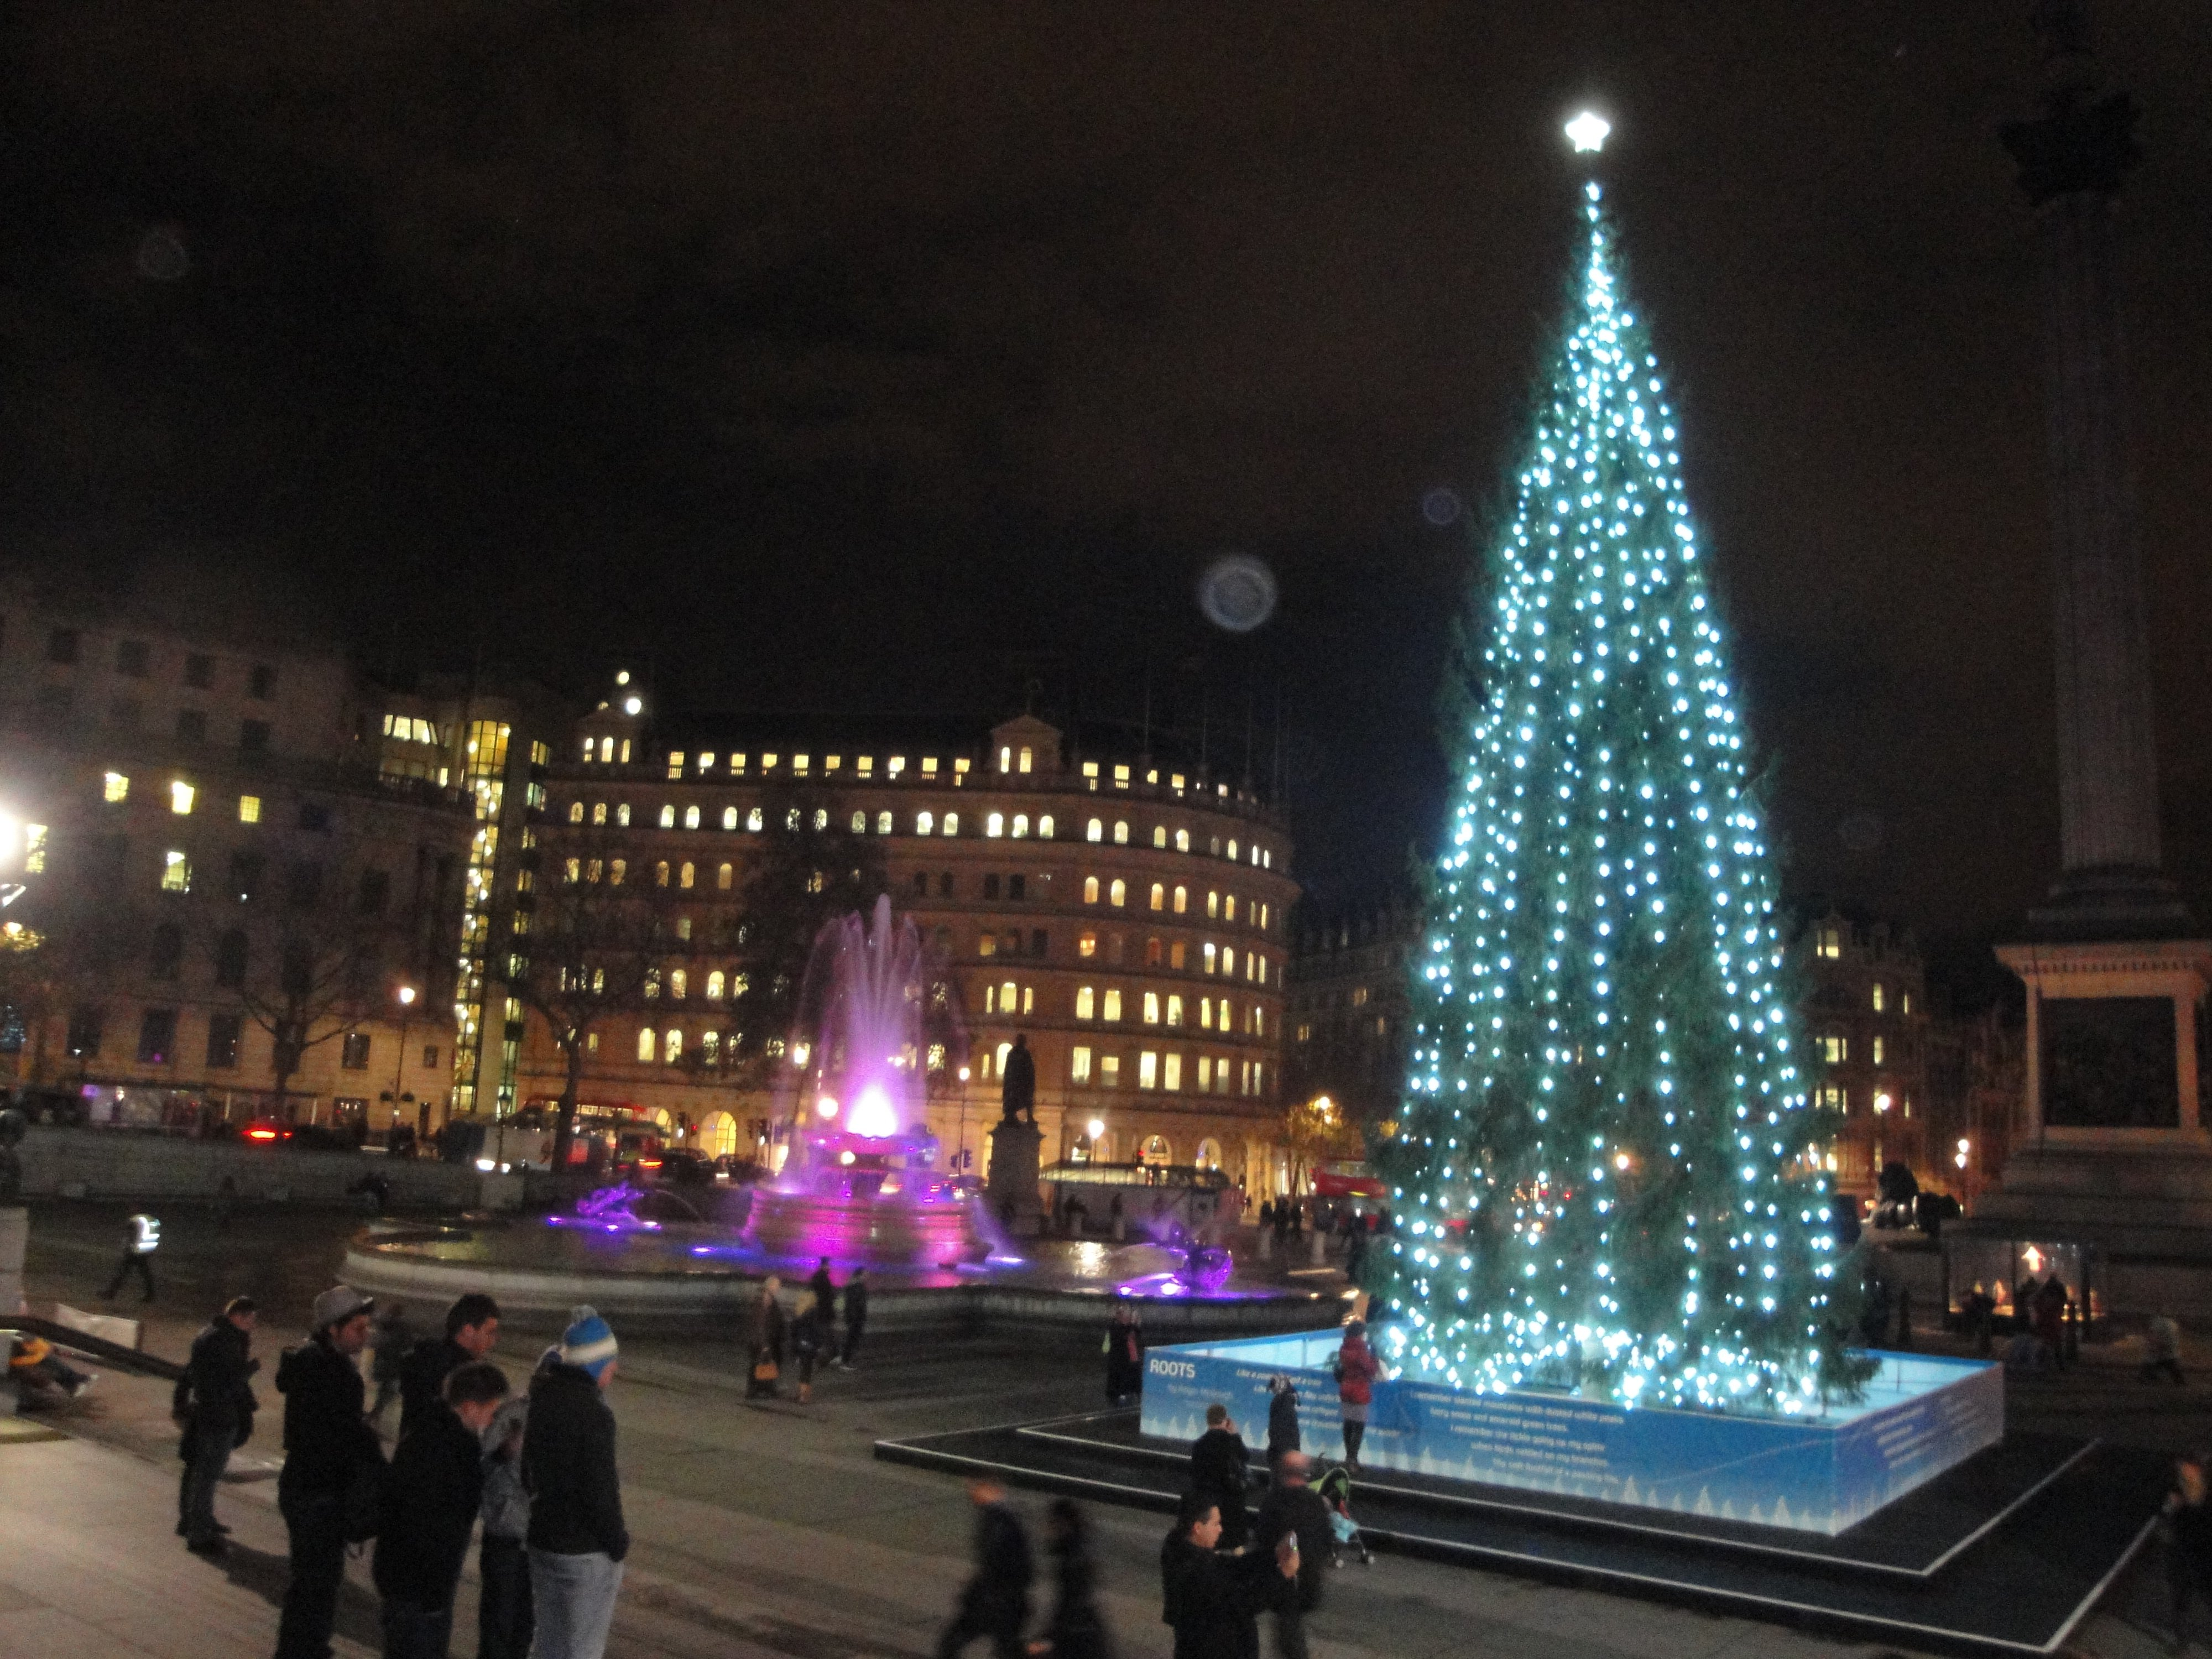 Trafalgar_Square_Christmas_tree_2011_at_night